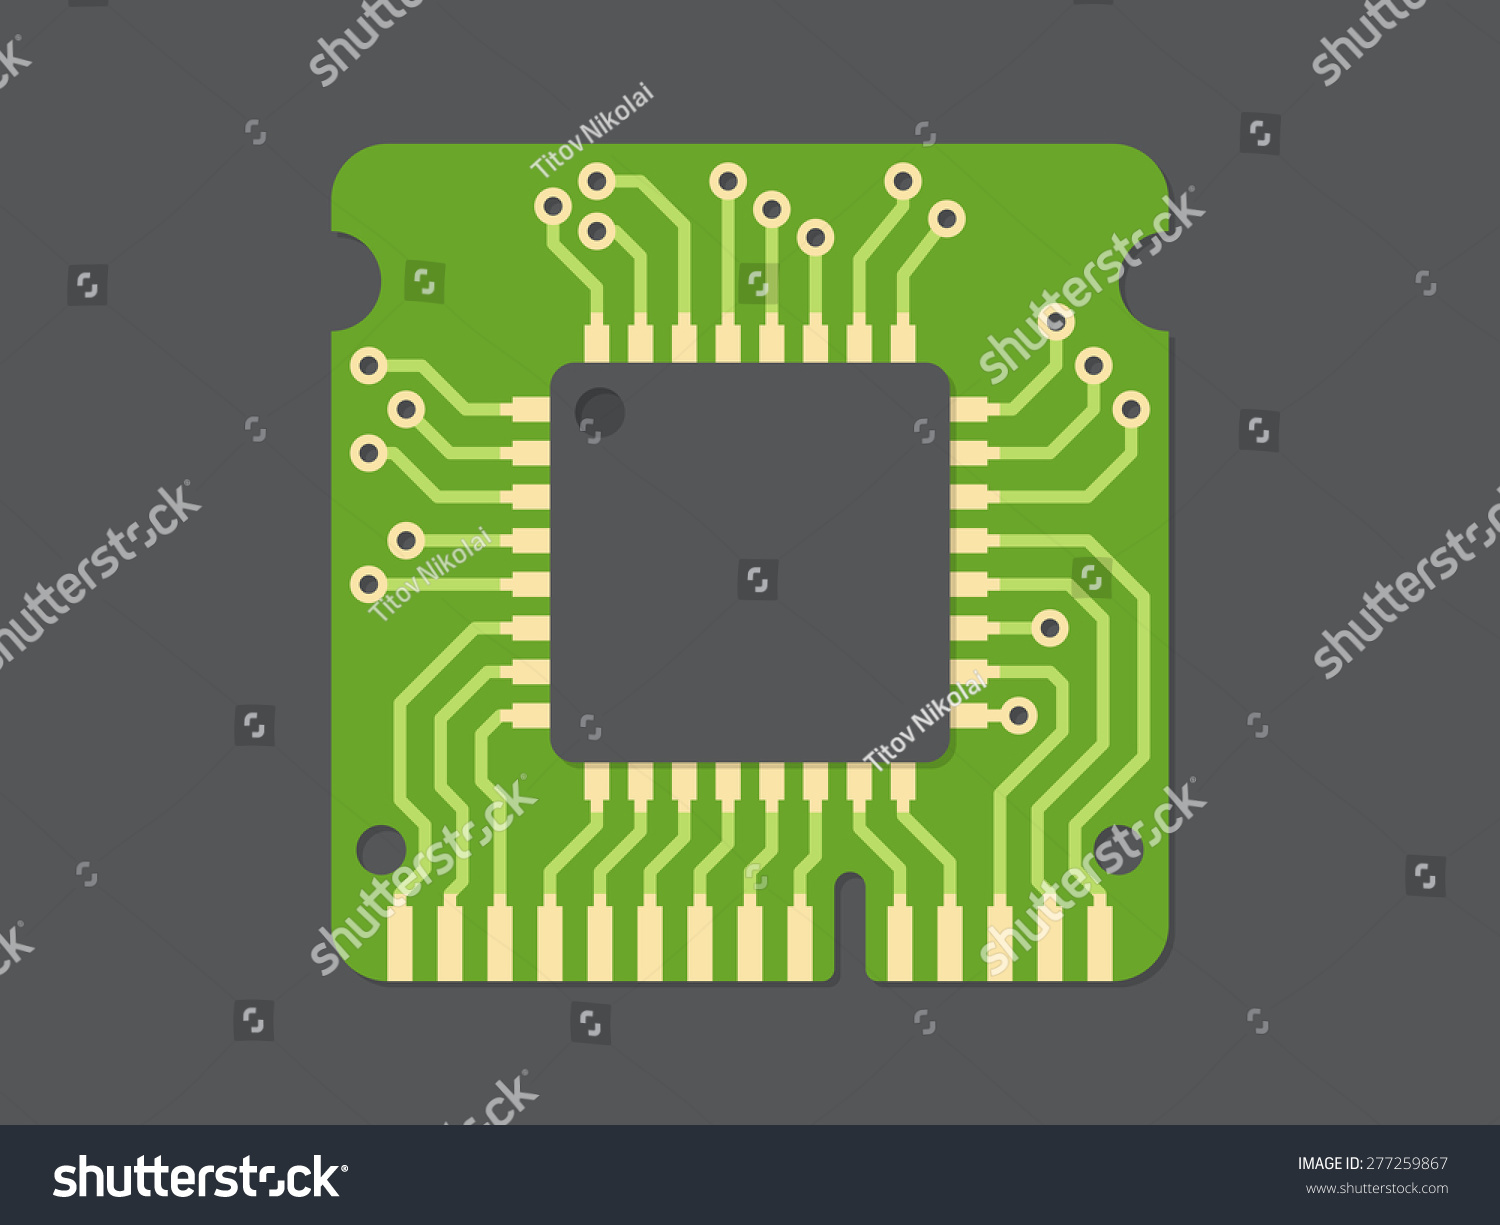 the random access memory computer science essay Static ram and dynamic ram are two available types of computer ram,or random access memory one advantage of static ram is speed,while a disadvantage is cost an advantage of dynamic ram isstorage space, while a disadvantage would be speed.